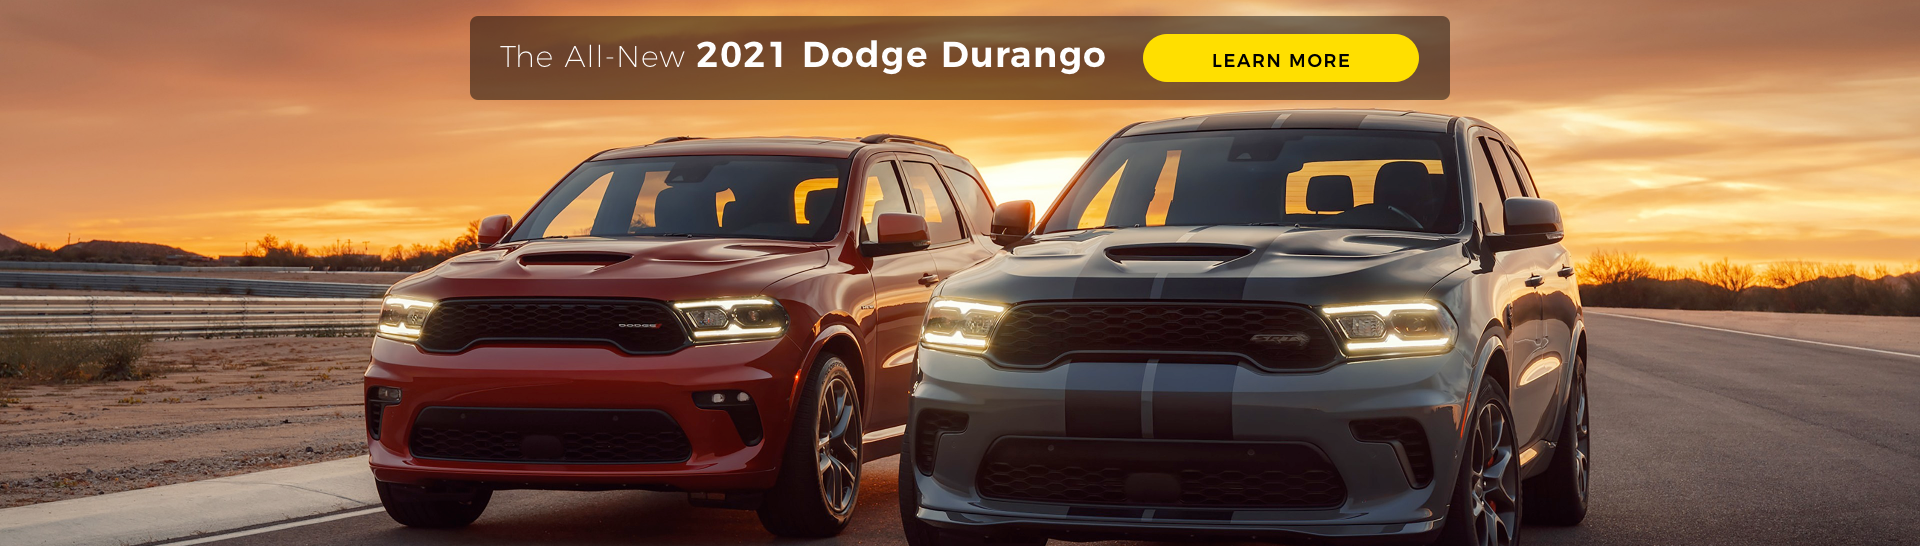 2021_Dodge_Durango_slider_desktop_ver2b